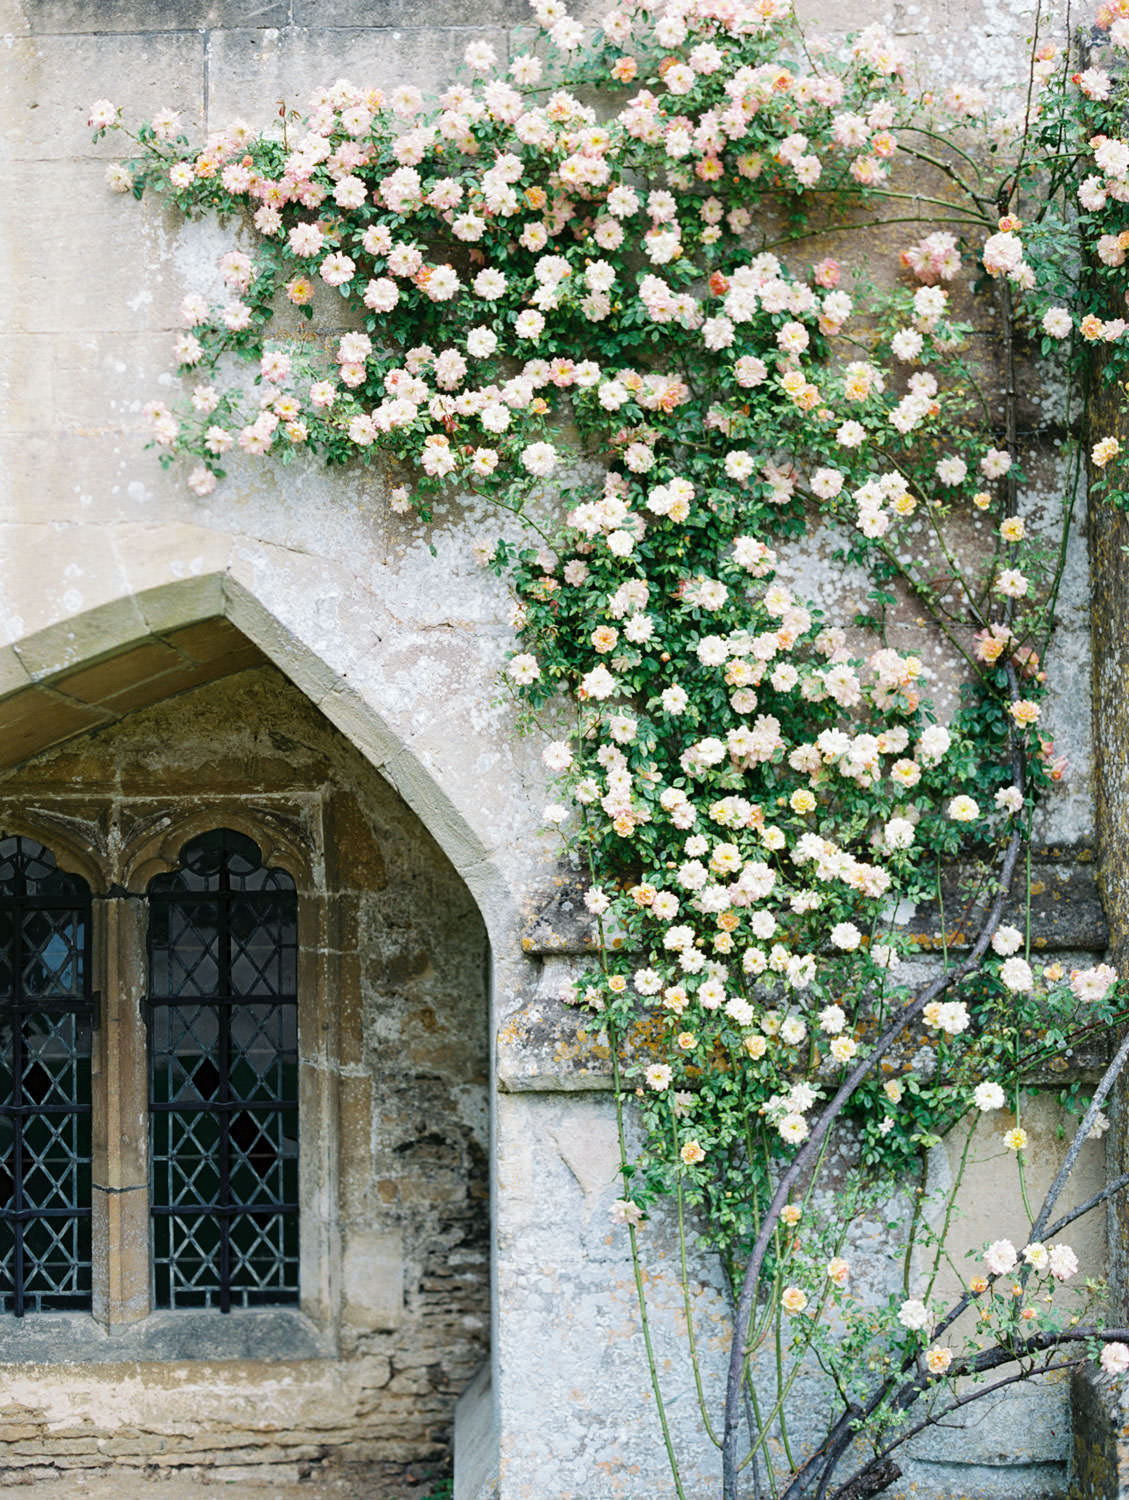 Flowers growing up the walls around a window near the Lacock Abbey entrance in England, Cavin Elizabeth Photography